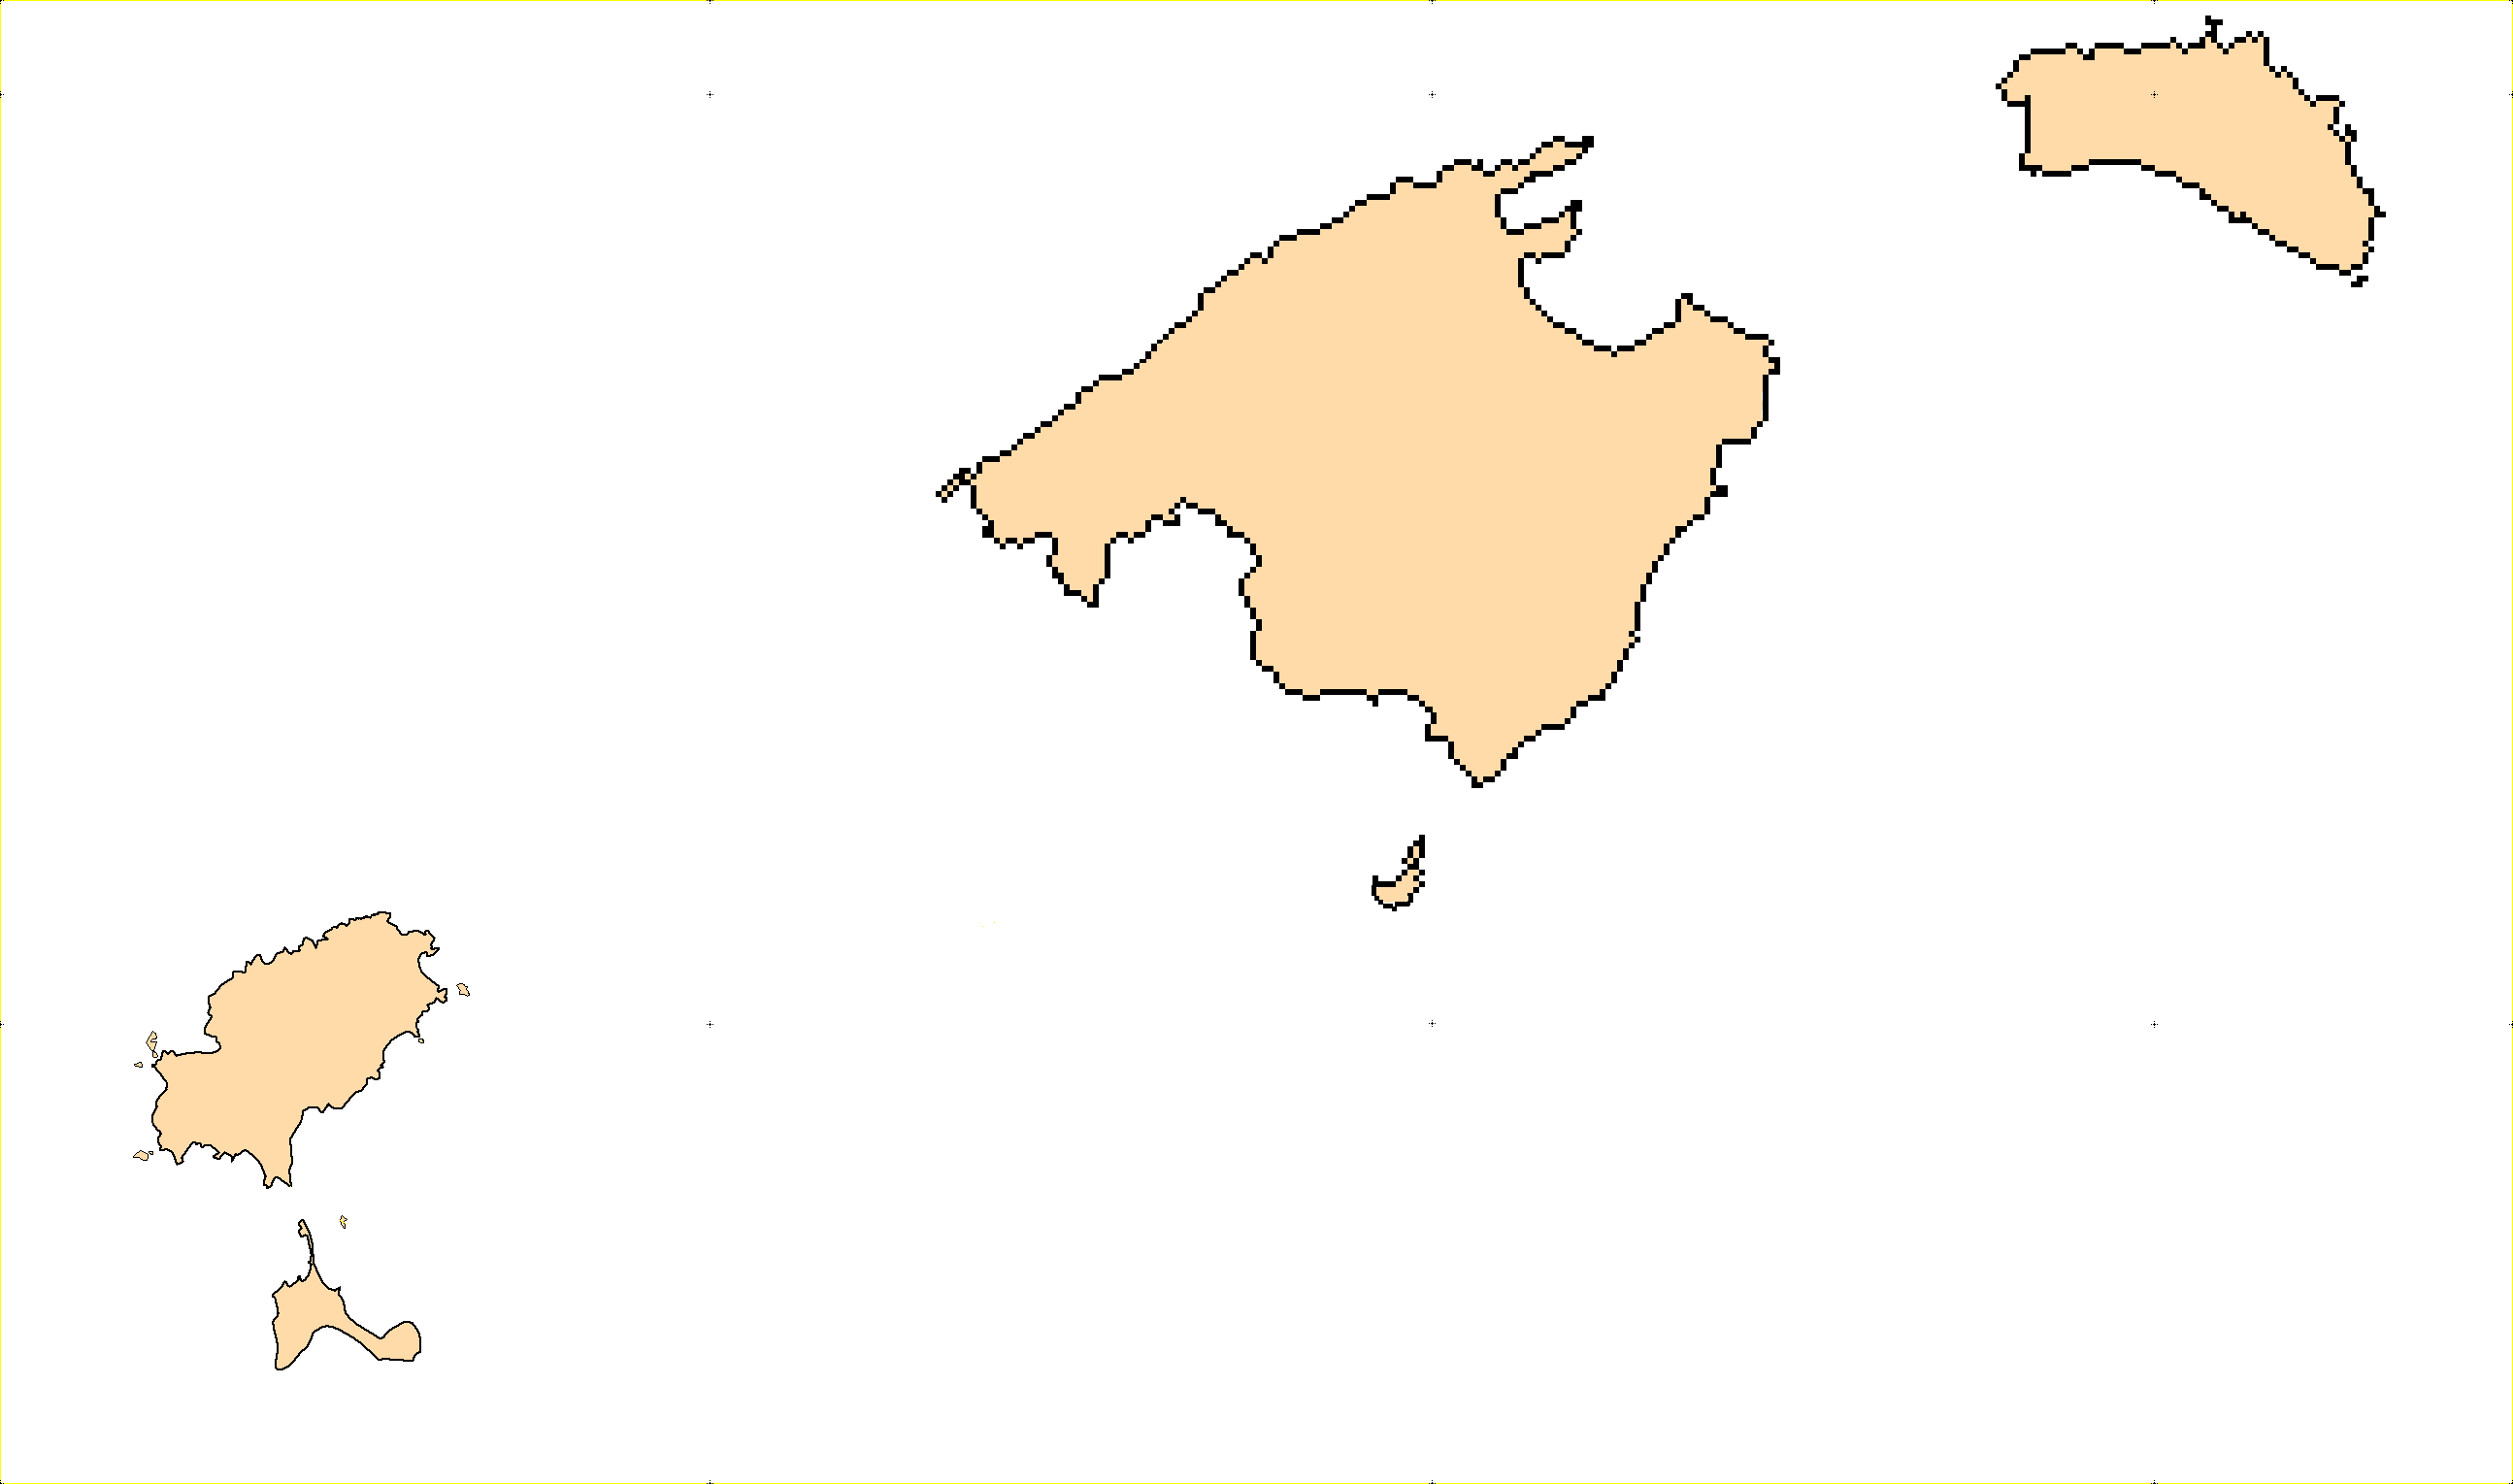 Outline map of Balearic Islands